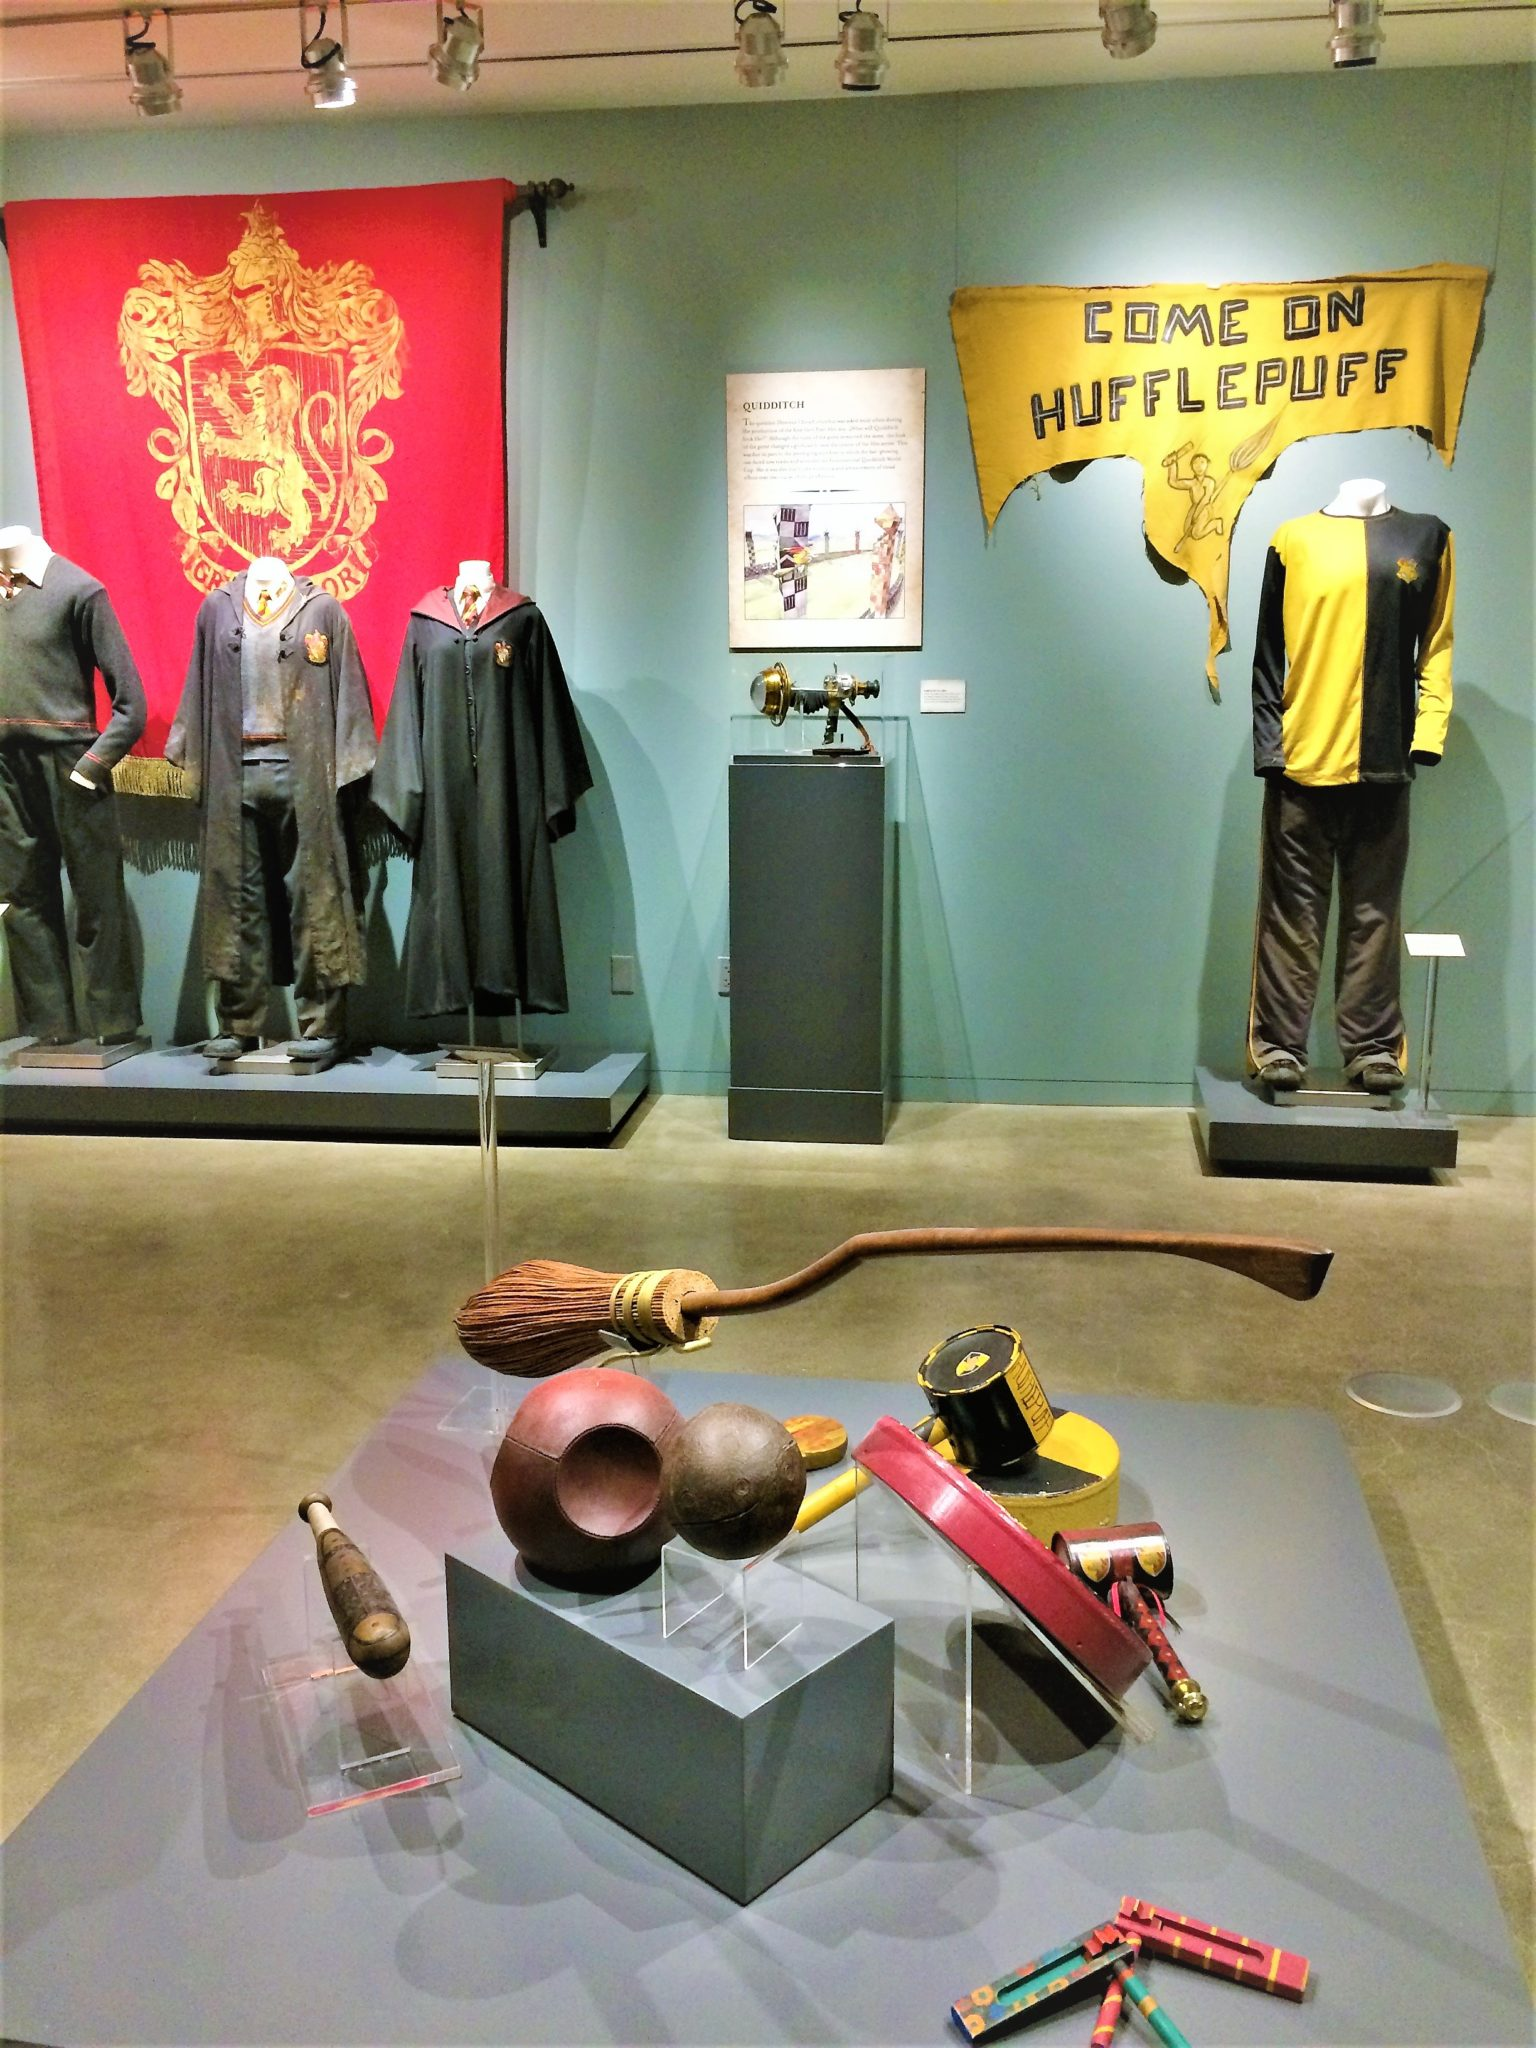 Harry Potter costumes, Warner Brothers Studios, Things to do in Los Angeles